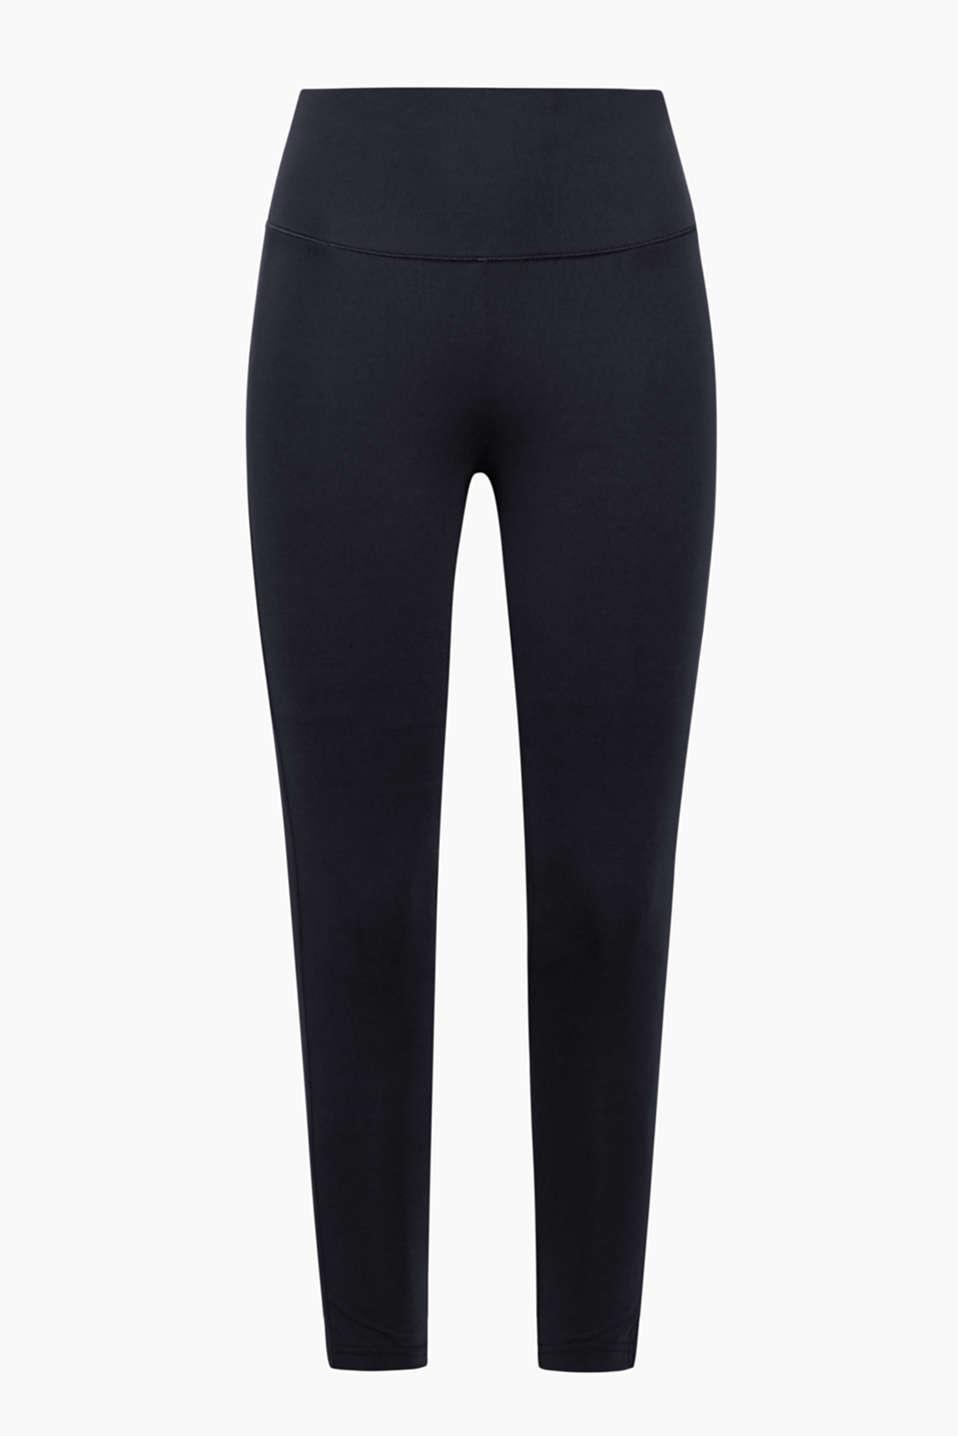 Sporty, bekvemme 7/8-tights i funktionelt E-DRY-materiale med bred, elastisk linning